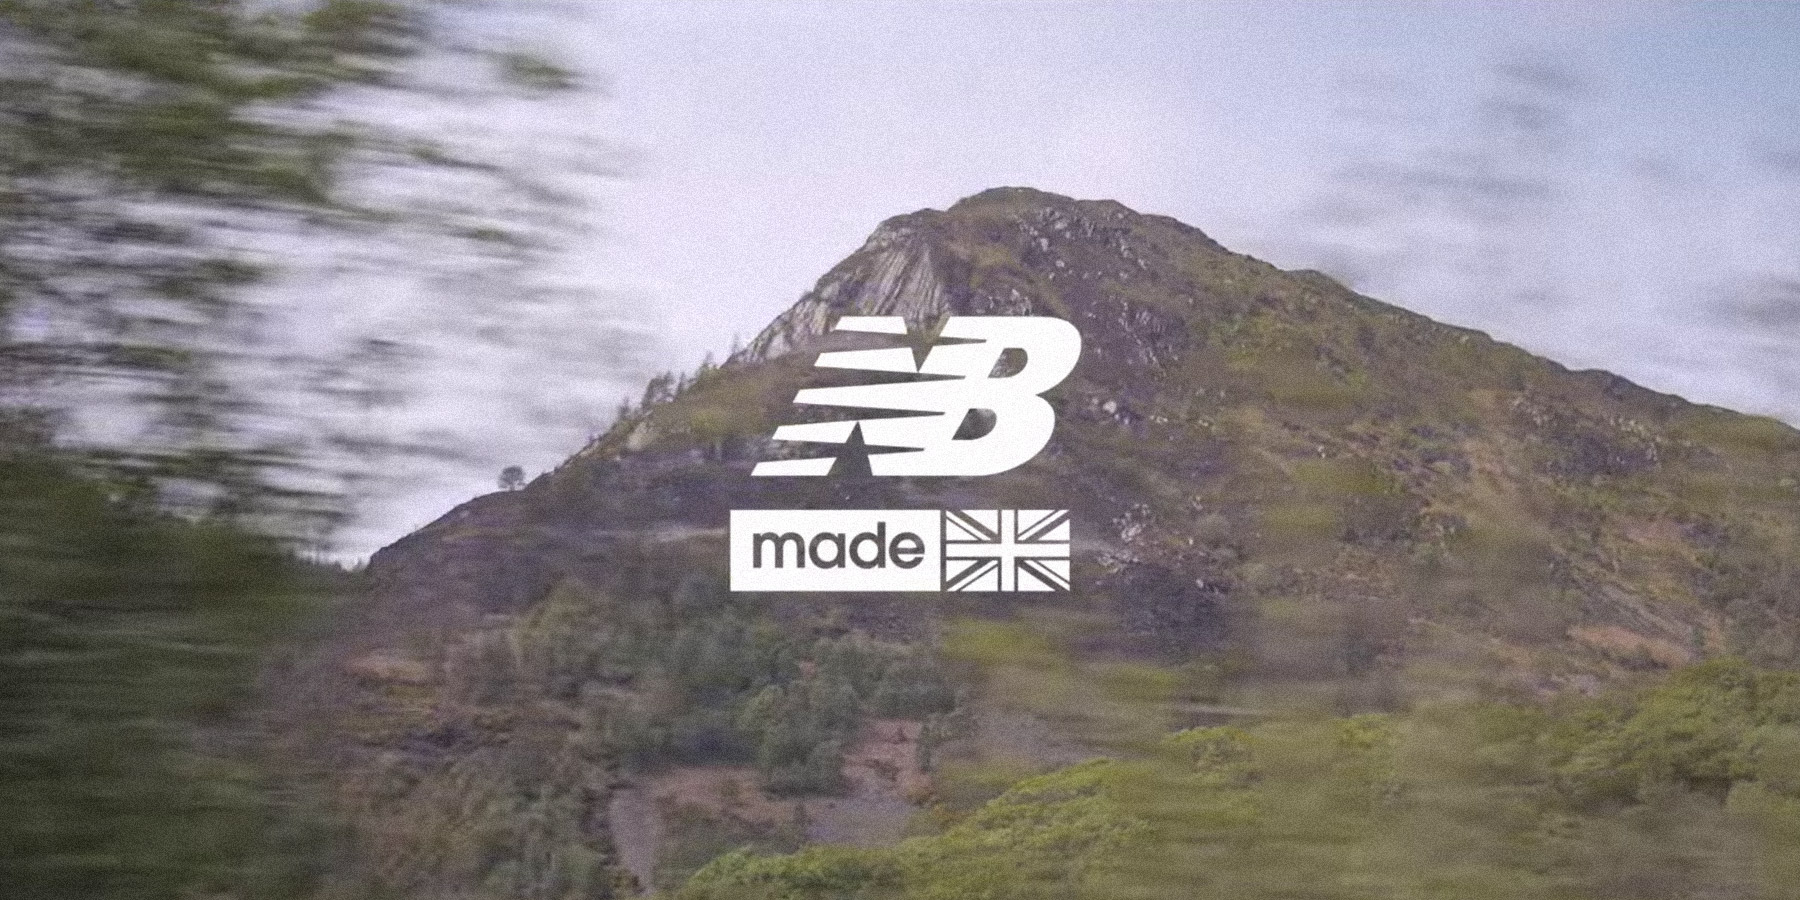 New Balance 770 MiUK Jörg Haas video still